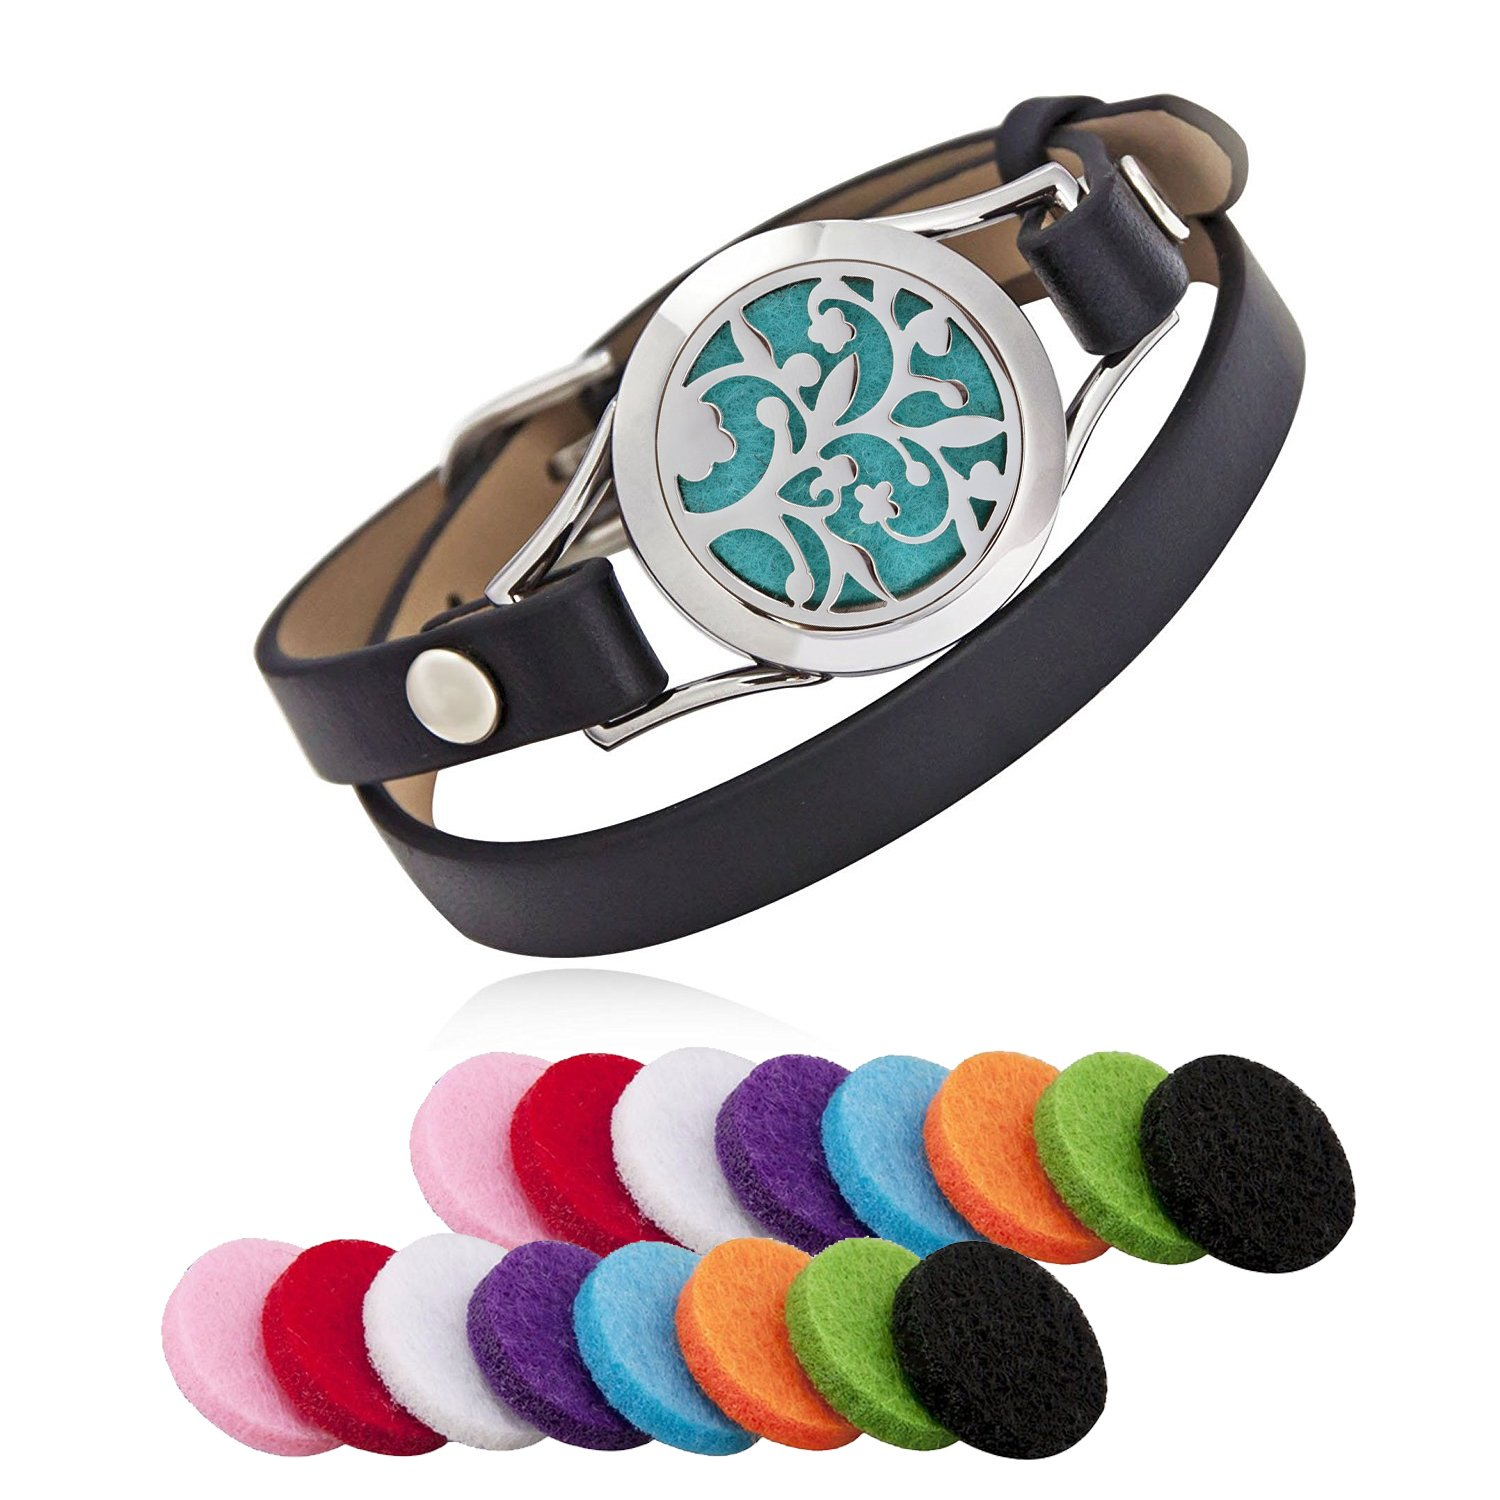 Aroma Essential Oil Diffuser Bracelet, LURICO Stainless Steel Aromatherapy Locket Bracelets with 16 Color Pads, Adjustable Leather Band with Jewelry Gift Box-Black by LURICO